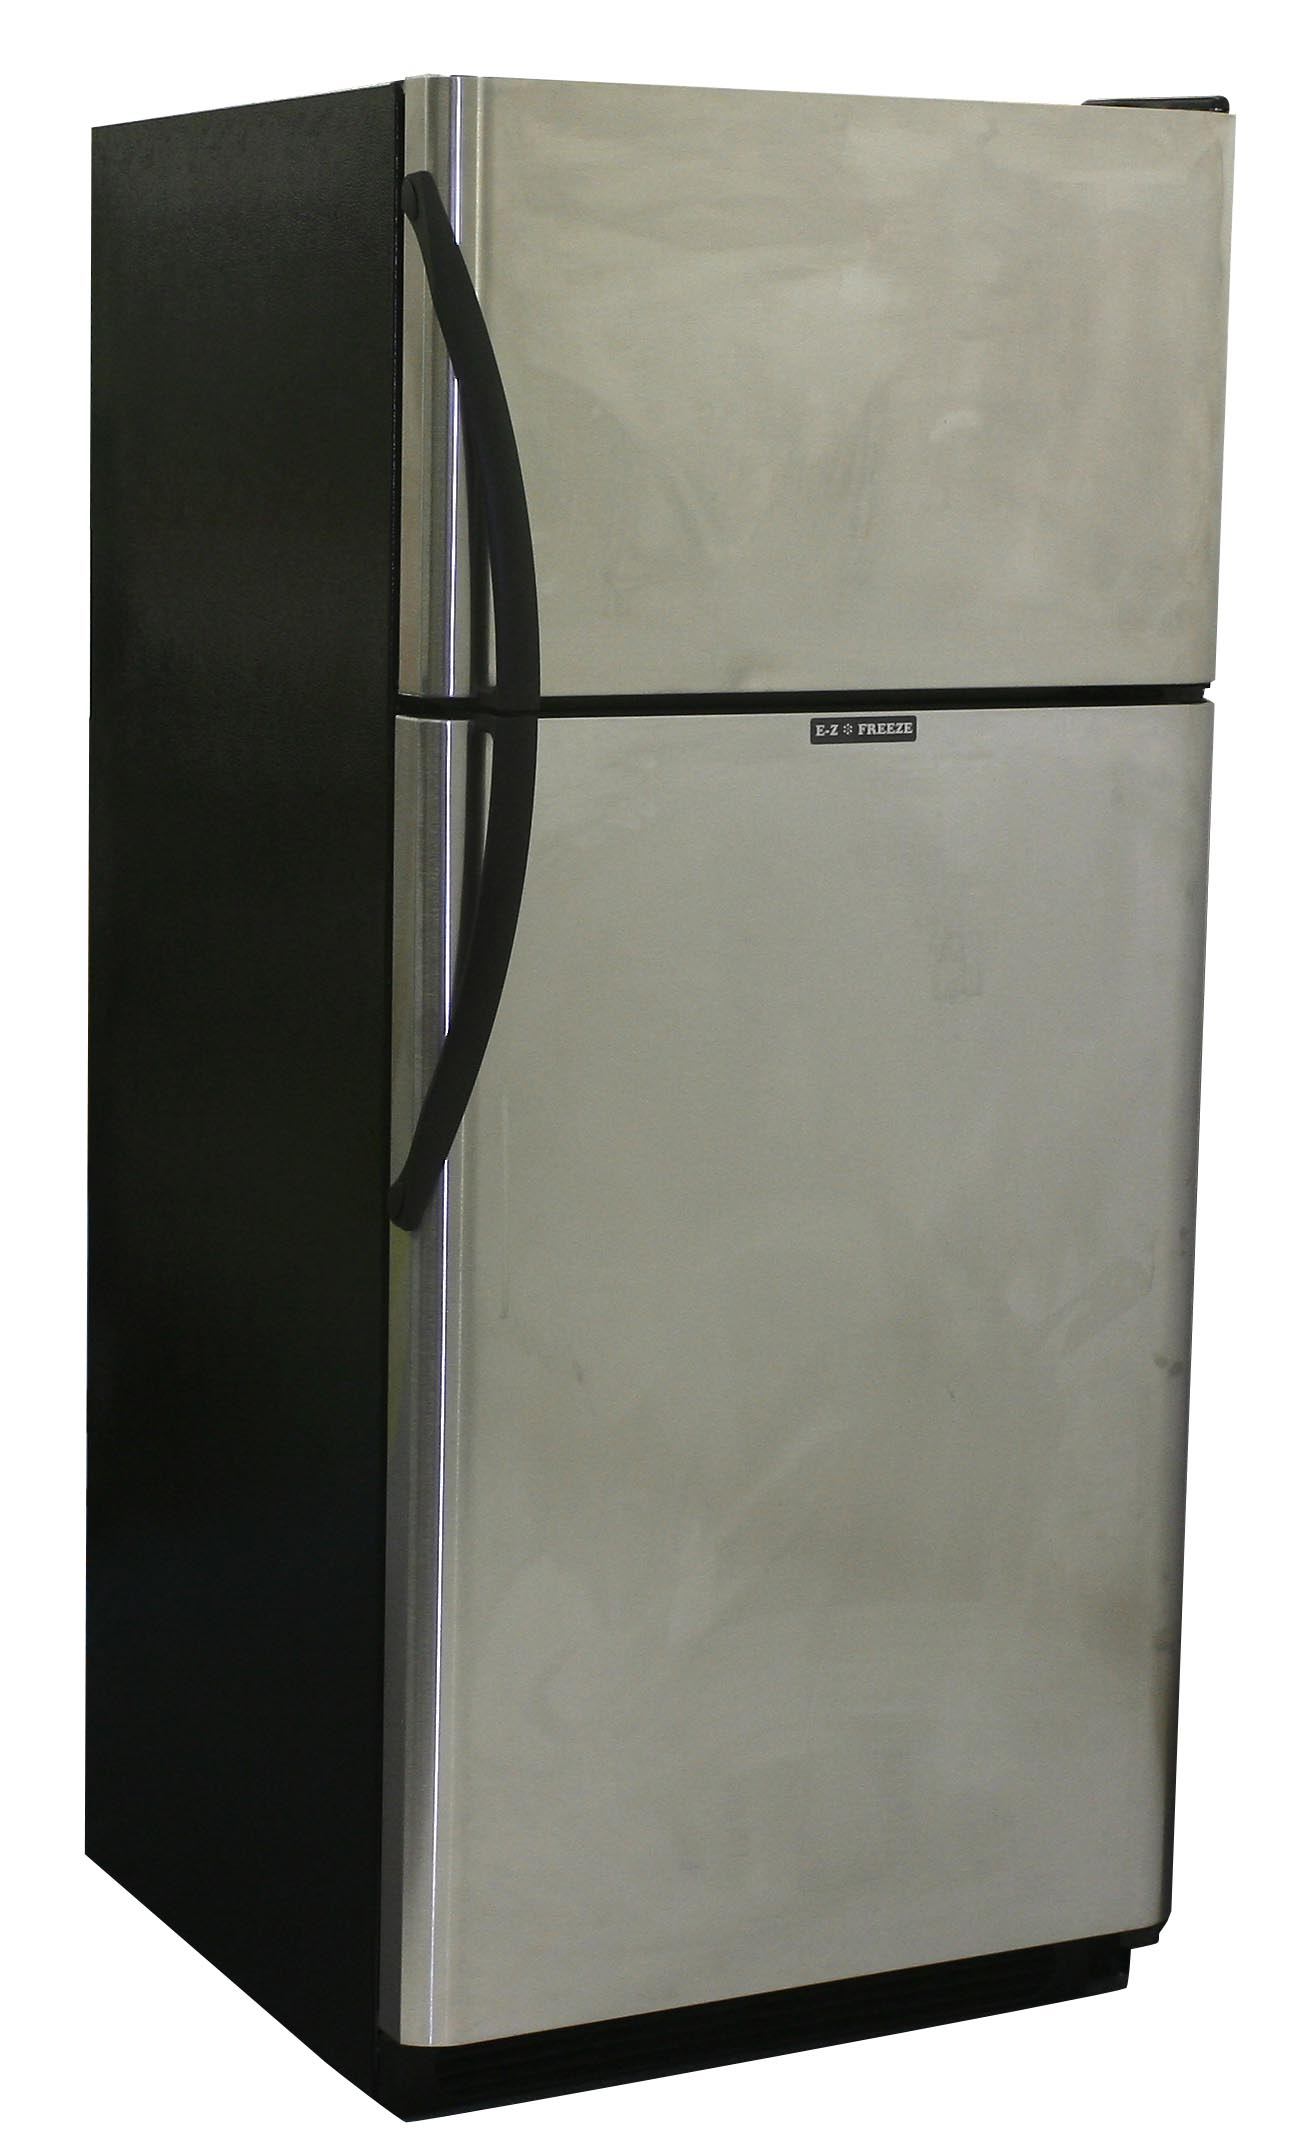 How To Properly Store A Refrigerator